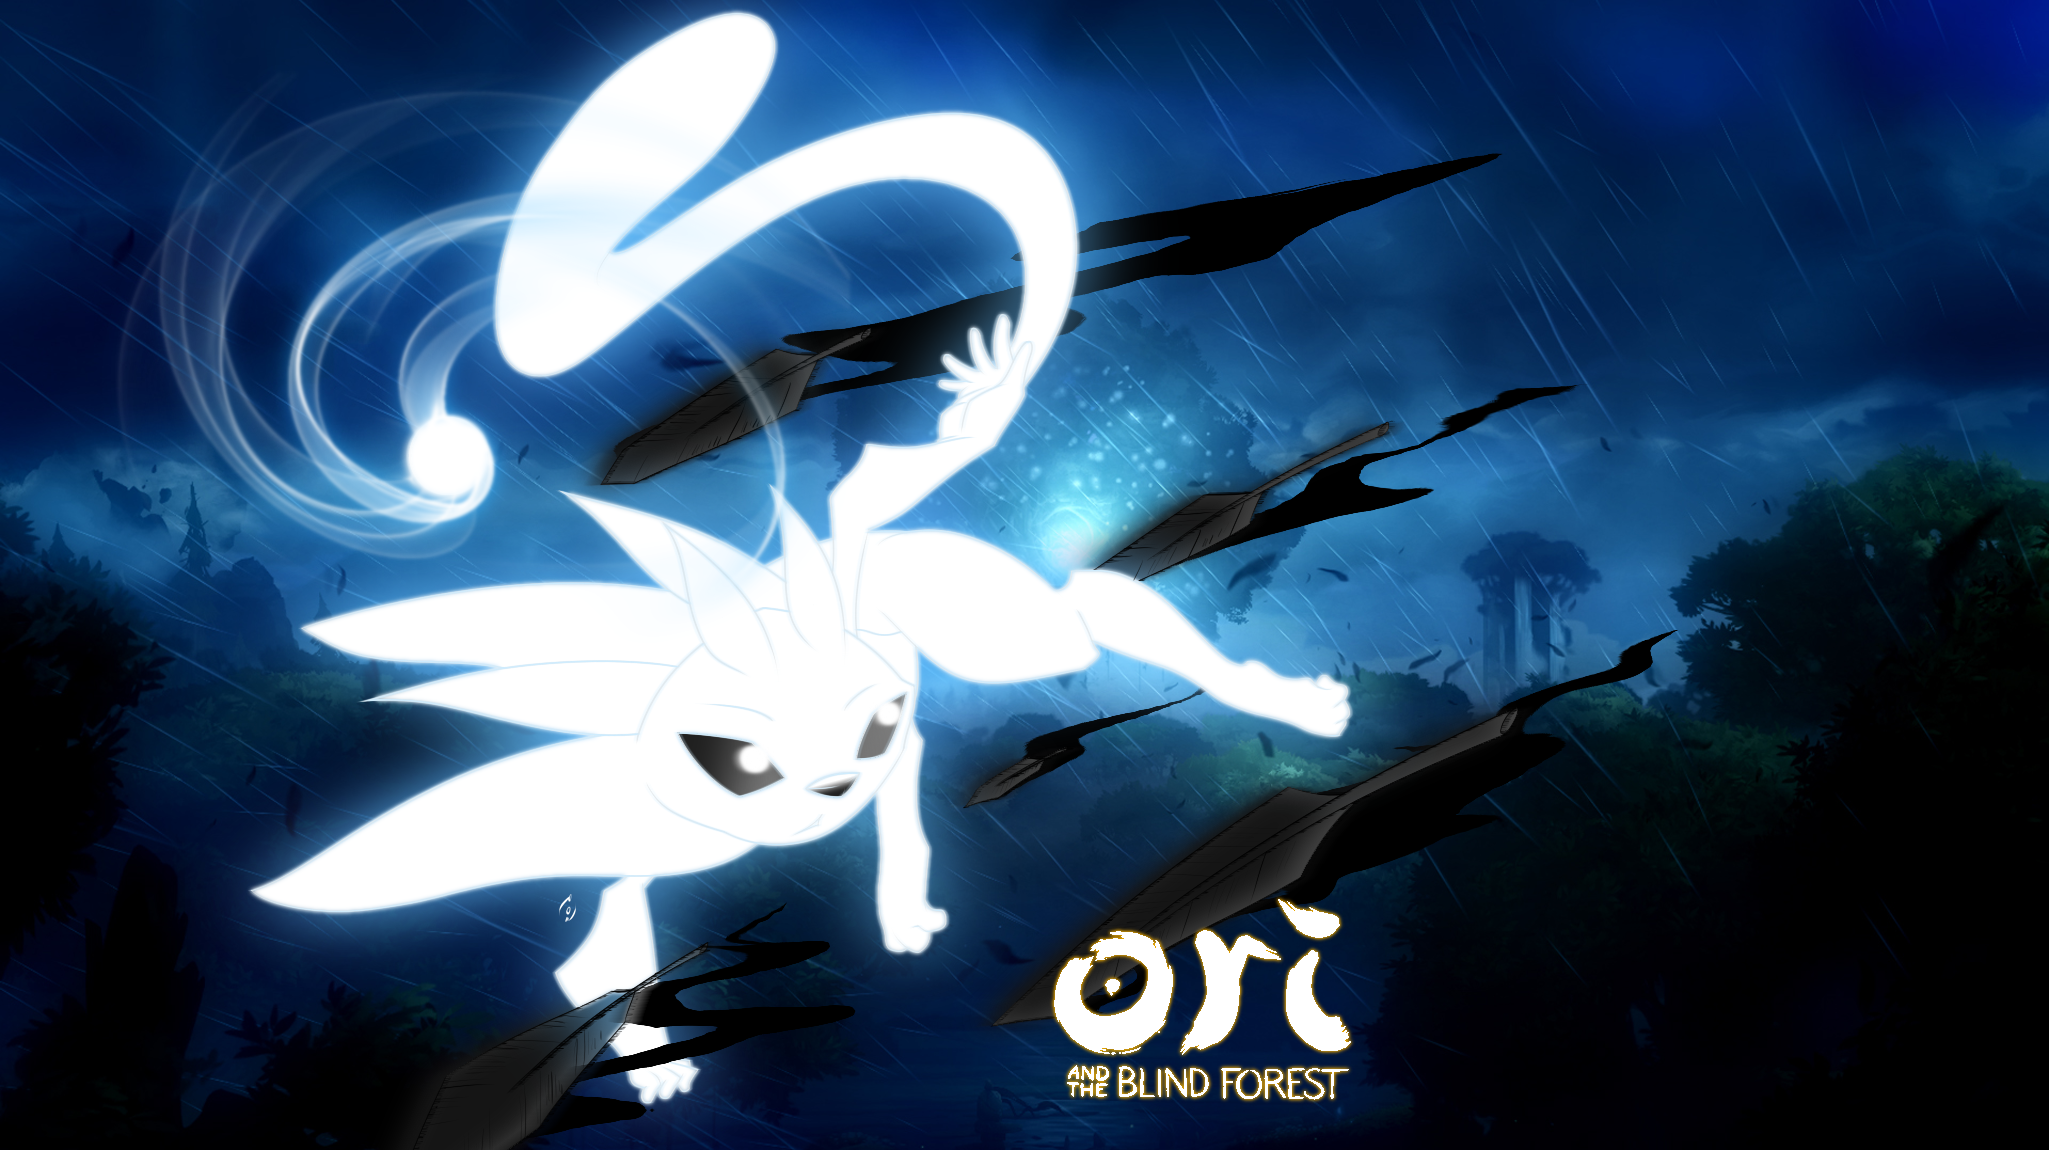 Free Download Ori And The Blind Forest By Akaonic 2049x1150 For